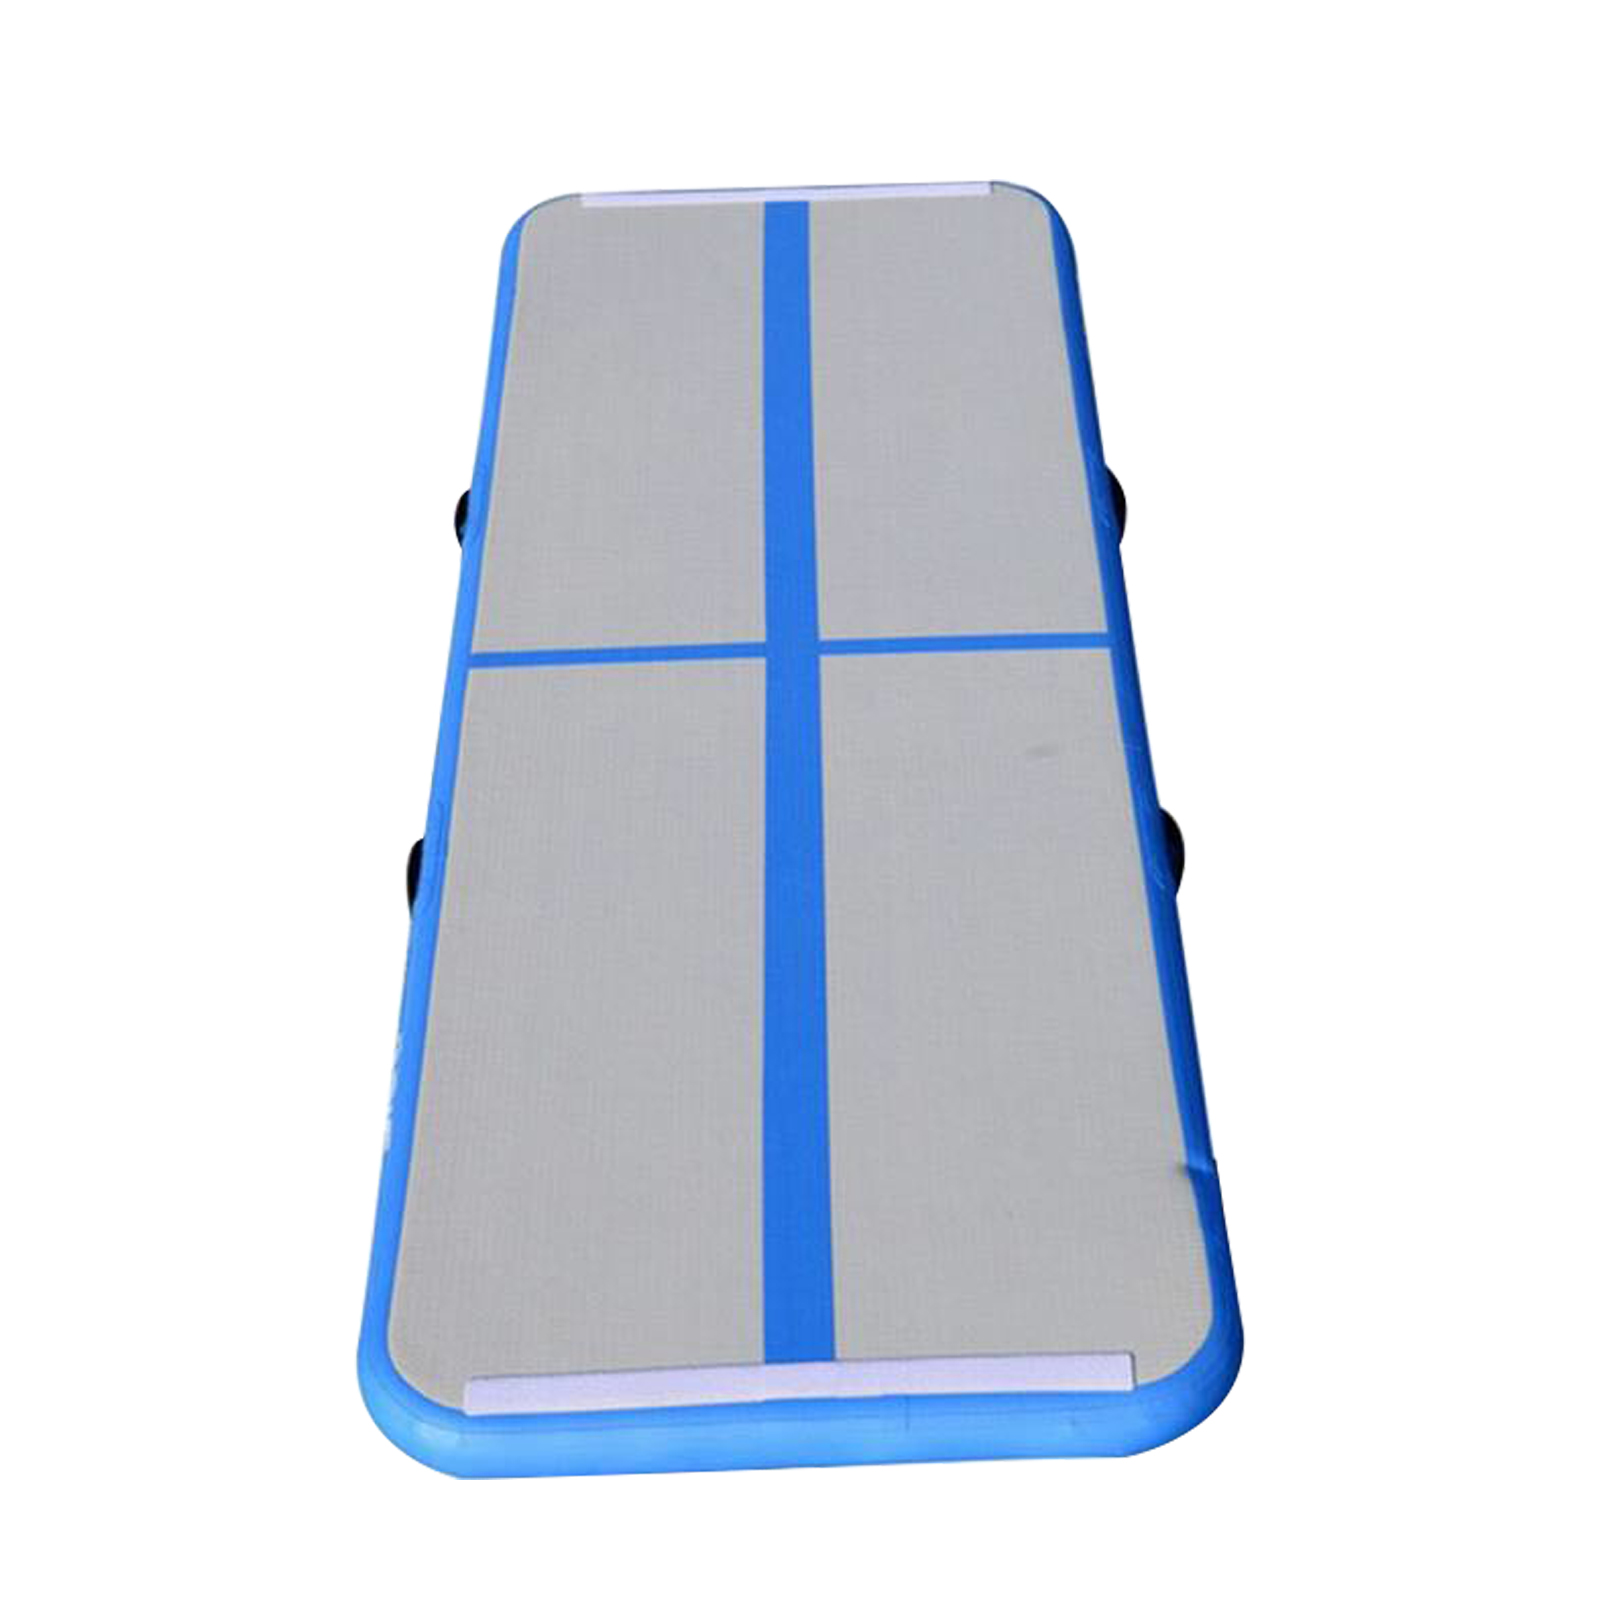 options mat aids for gymnastic home cheerleading mats inc sports resilite purple inclinemat incline products cheer training explore